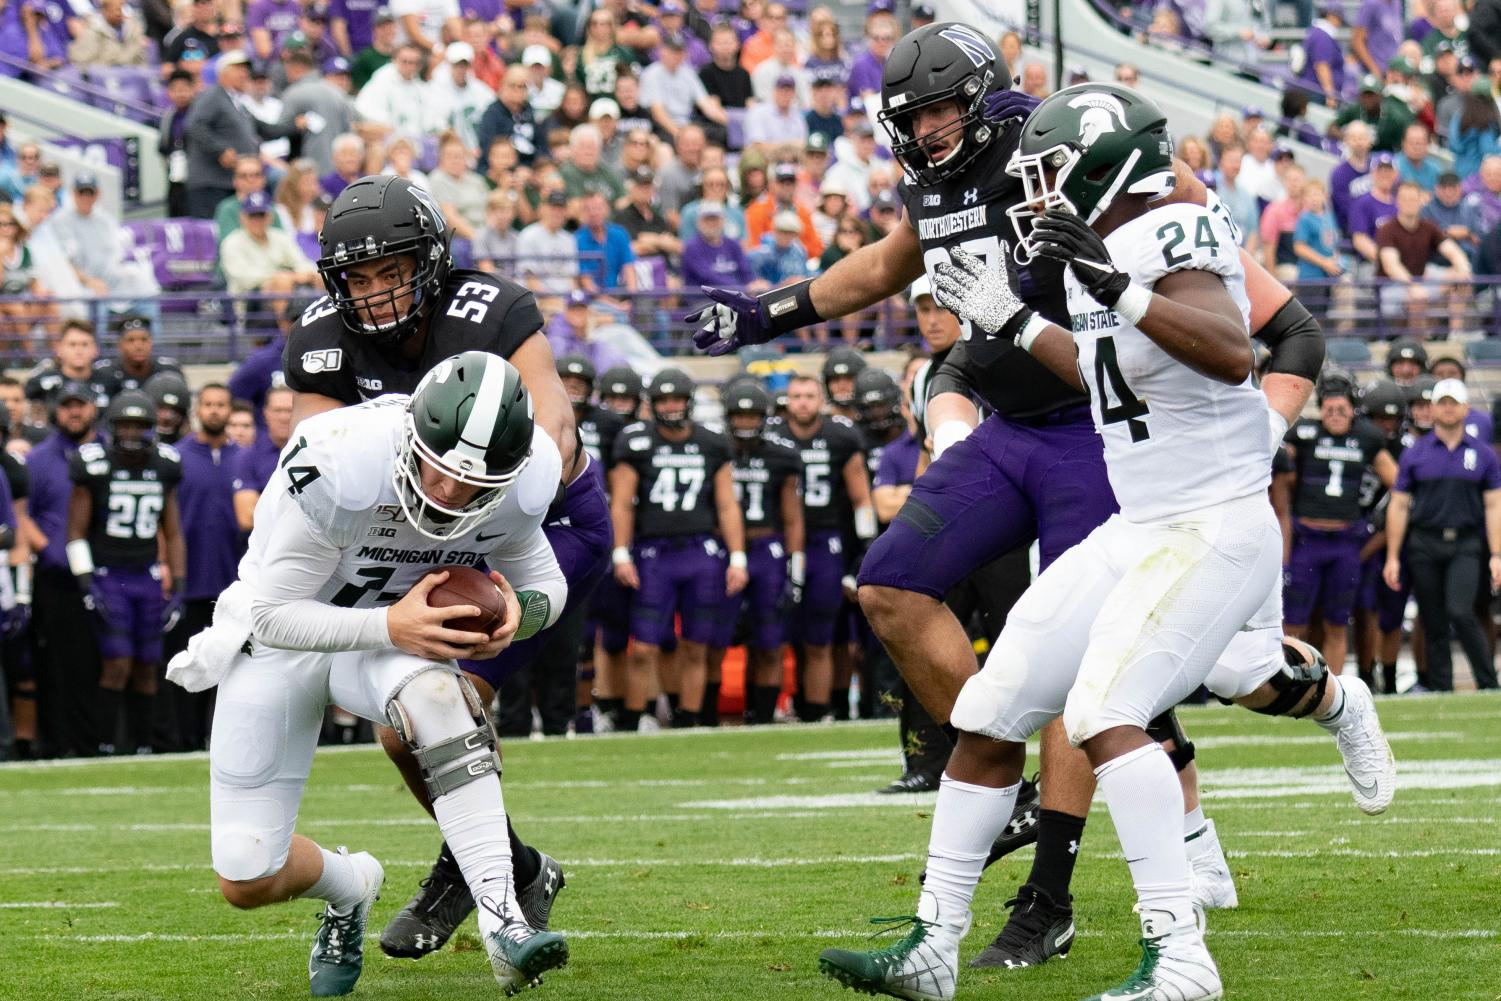 Brian Lewerke funs away from a Northwestern defender. Lewerke earned his first win over the Wildcats on Saturday.